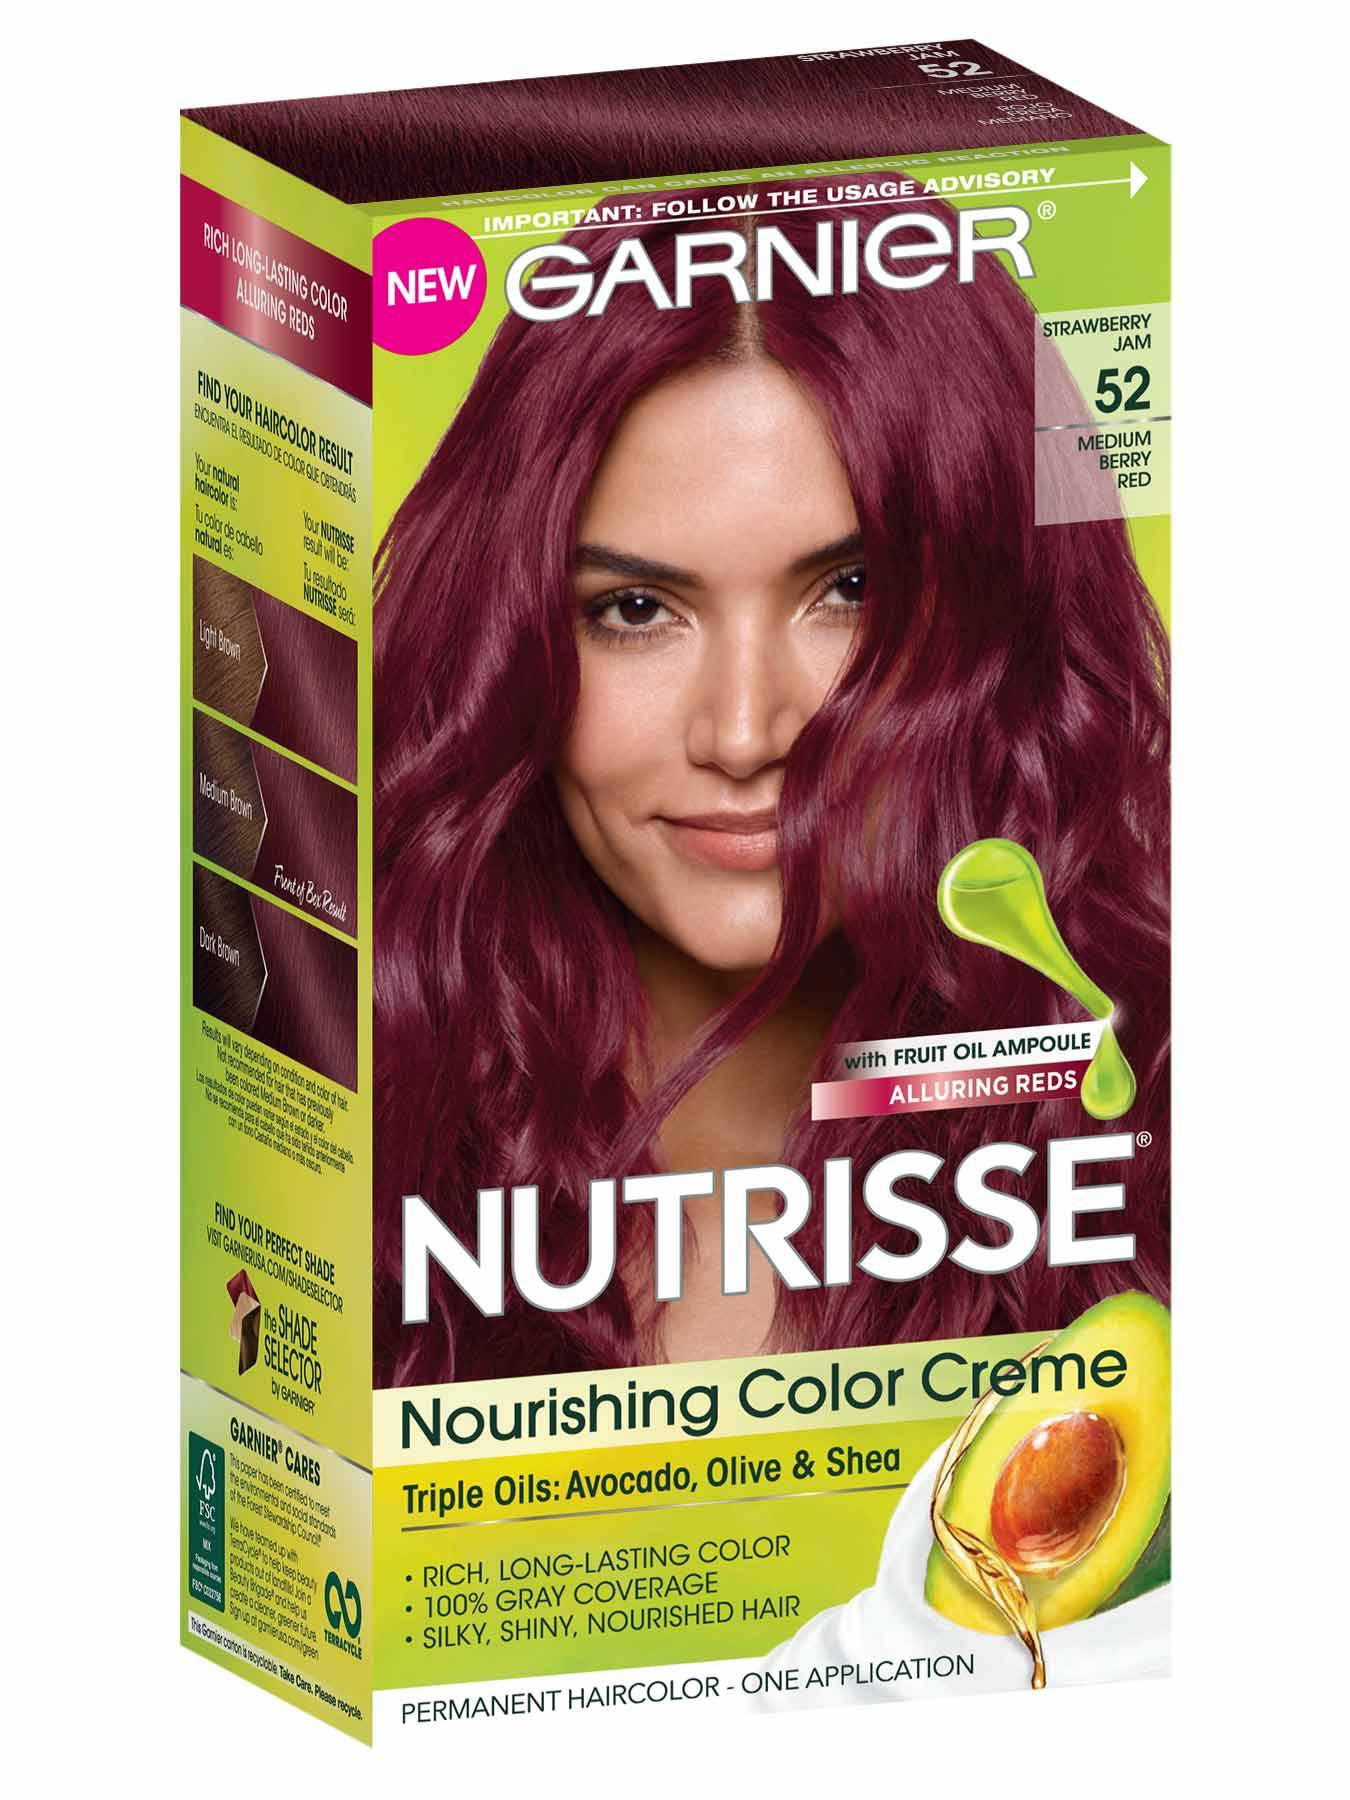 Nutrisse Nourishing Color Creme Medium Berry Red 52